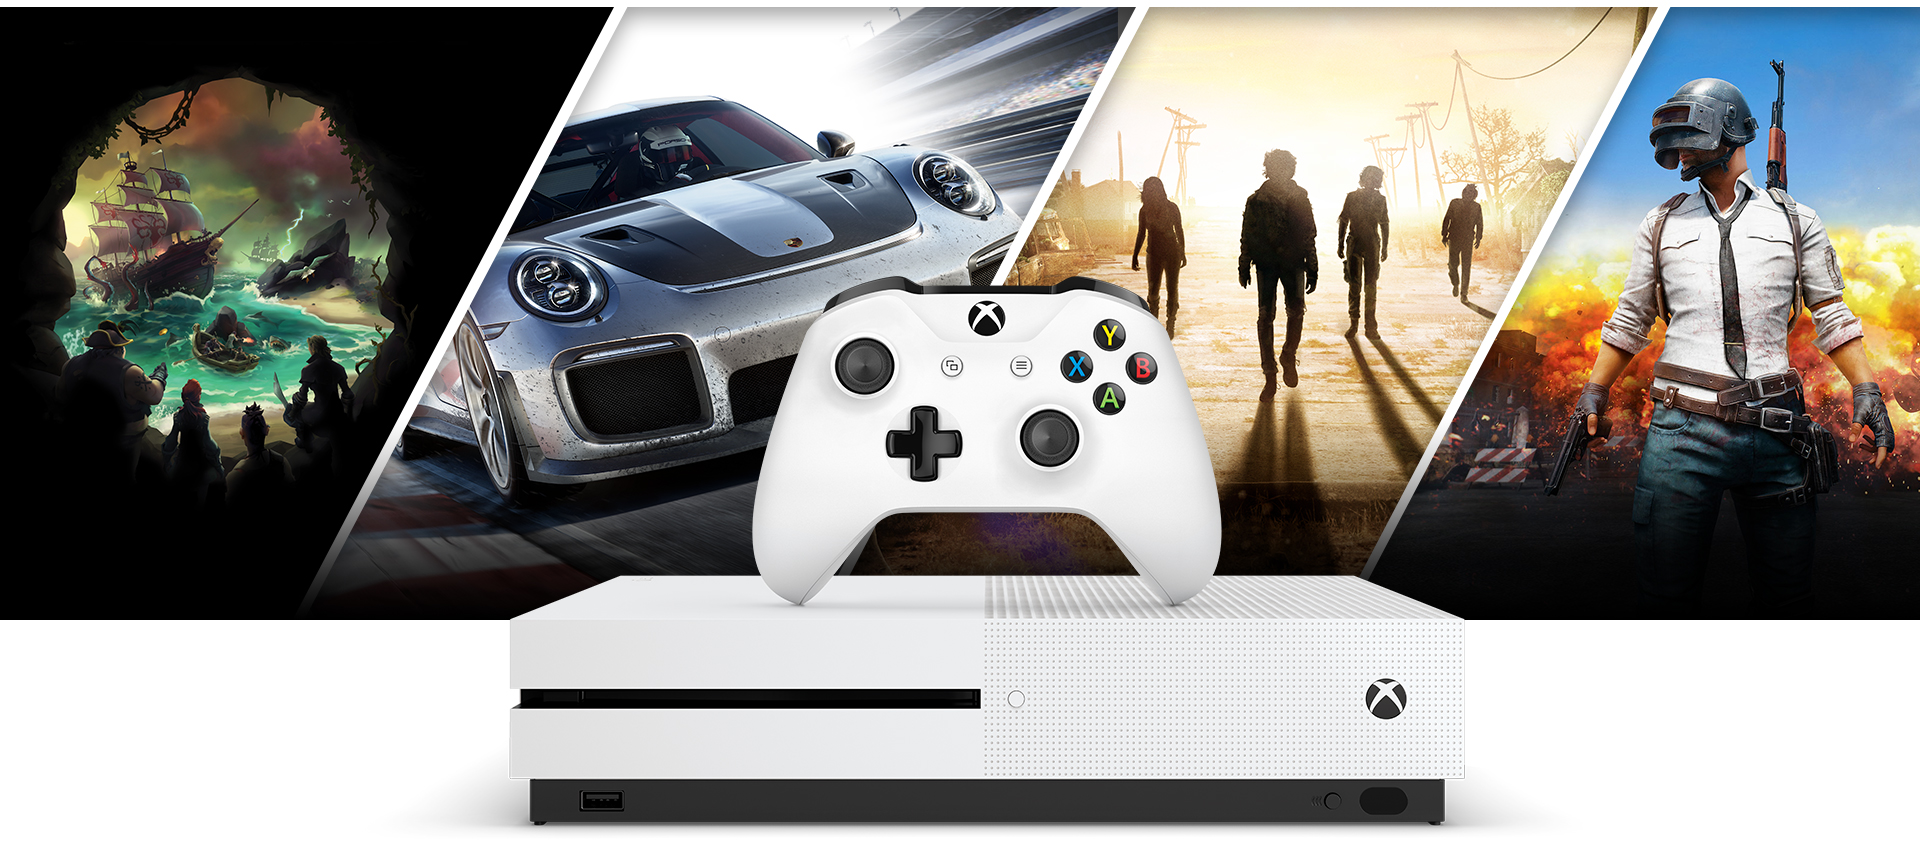 Sea of Thieves Forza 7 State of Decay 3 and PlayerUnknowns Battlegrounds graphics behind an Xbox One S and White Xbox Controller